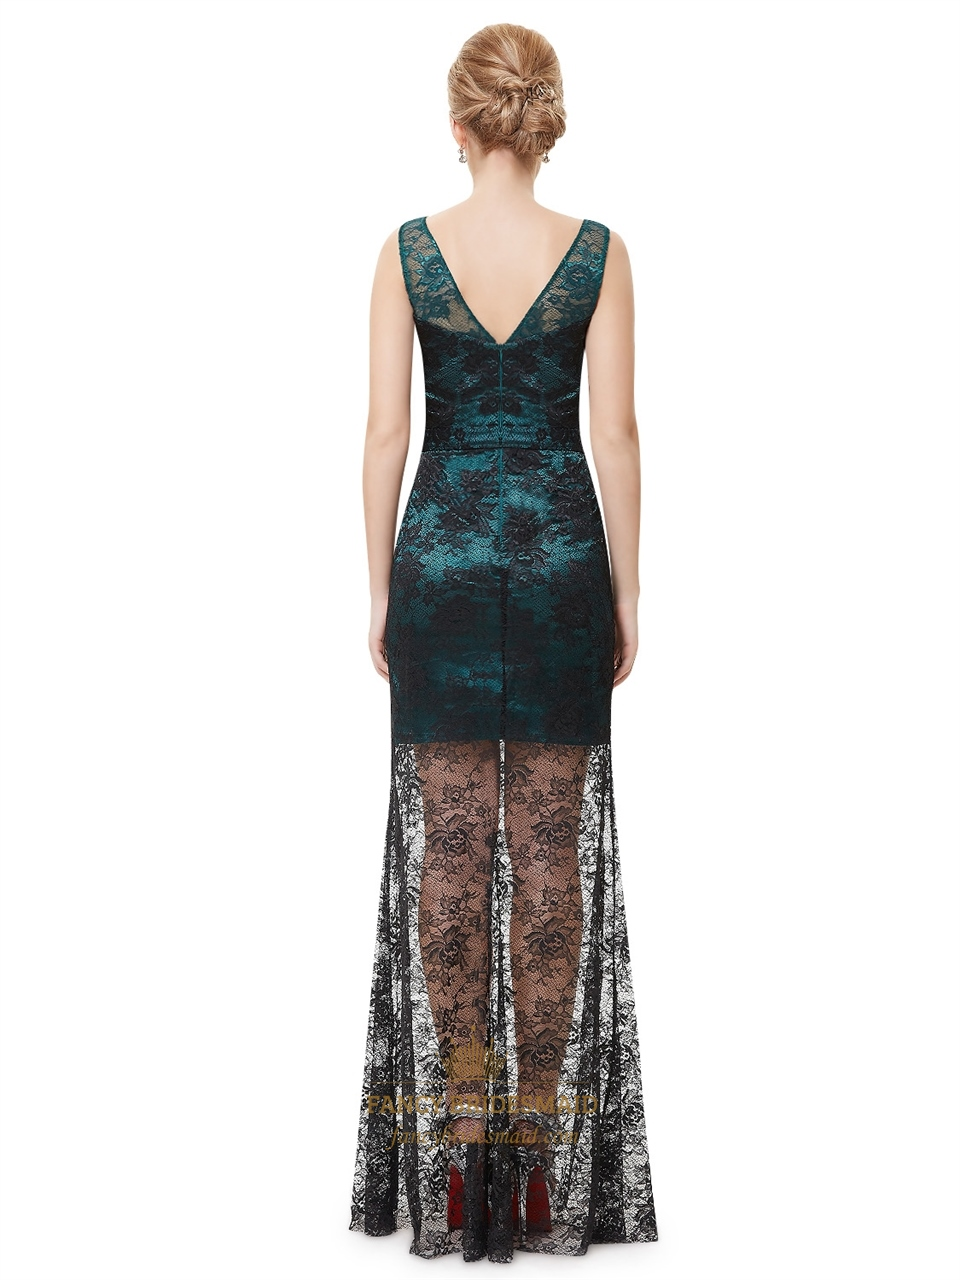 Teal black lace dress